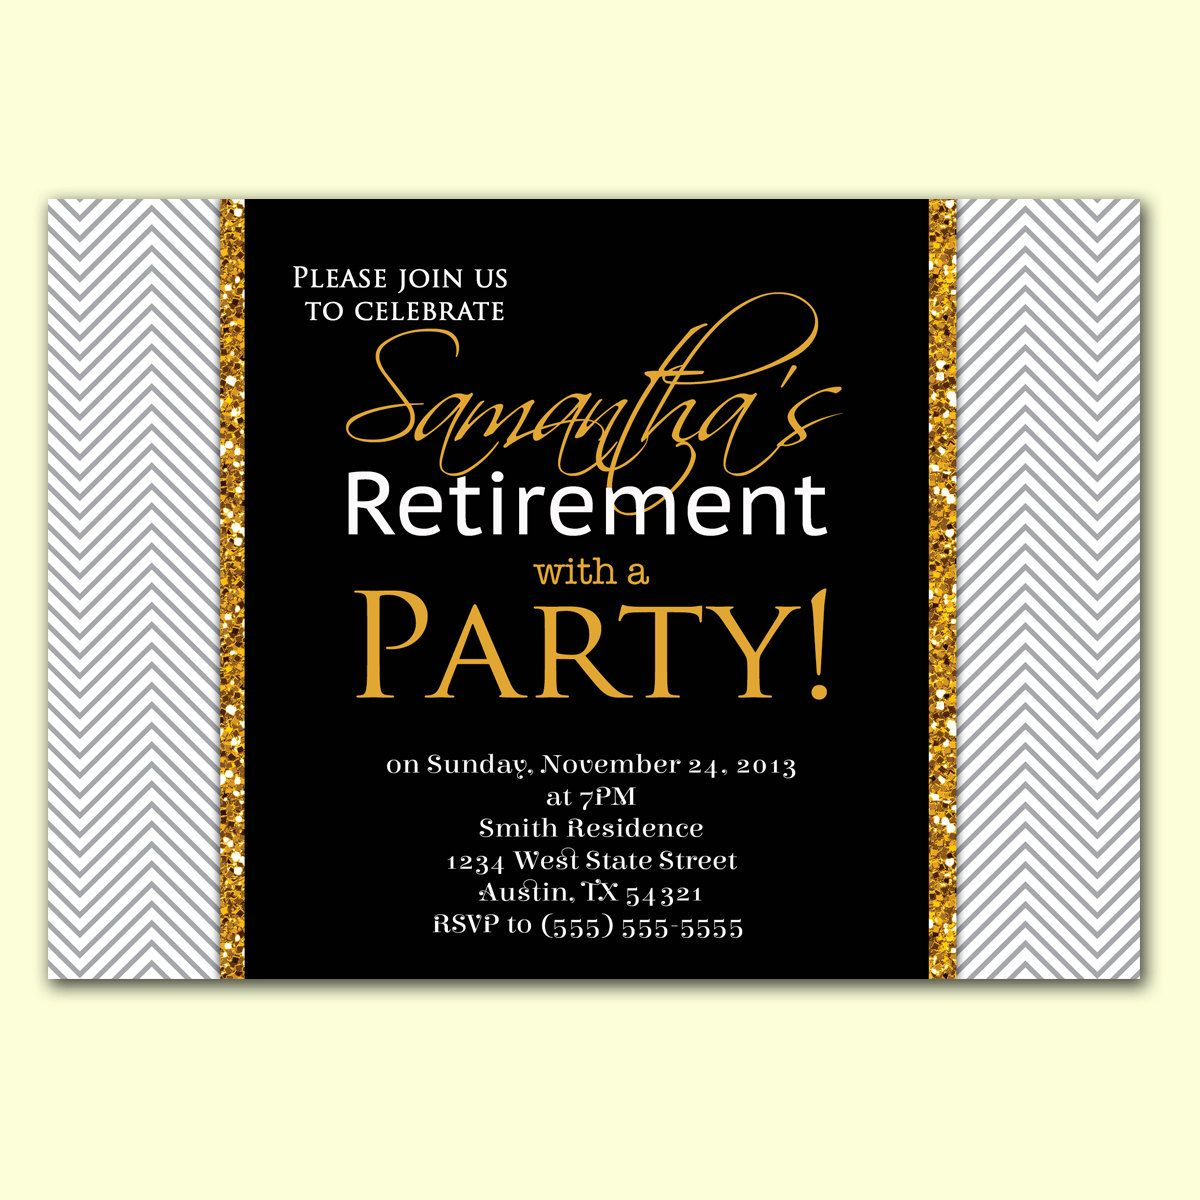 Retirement Party Invitation Borders | Invitationswedd.org